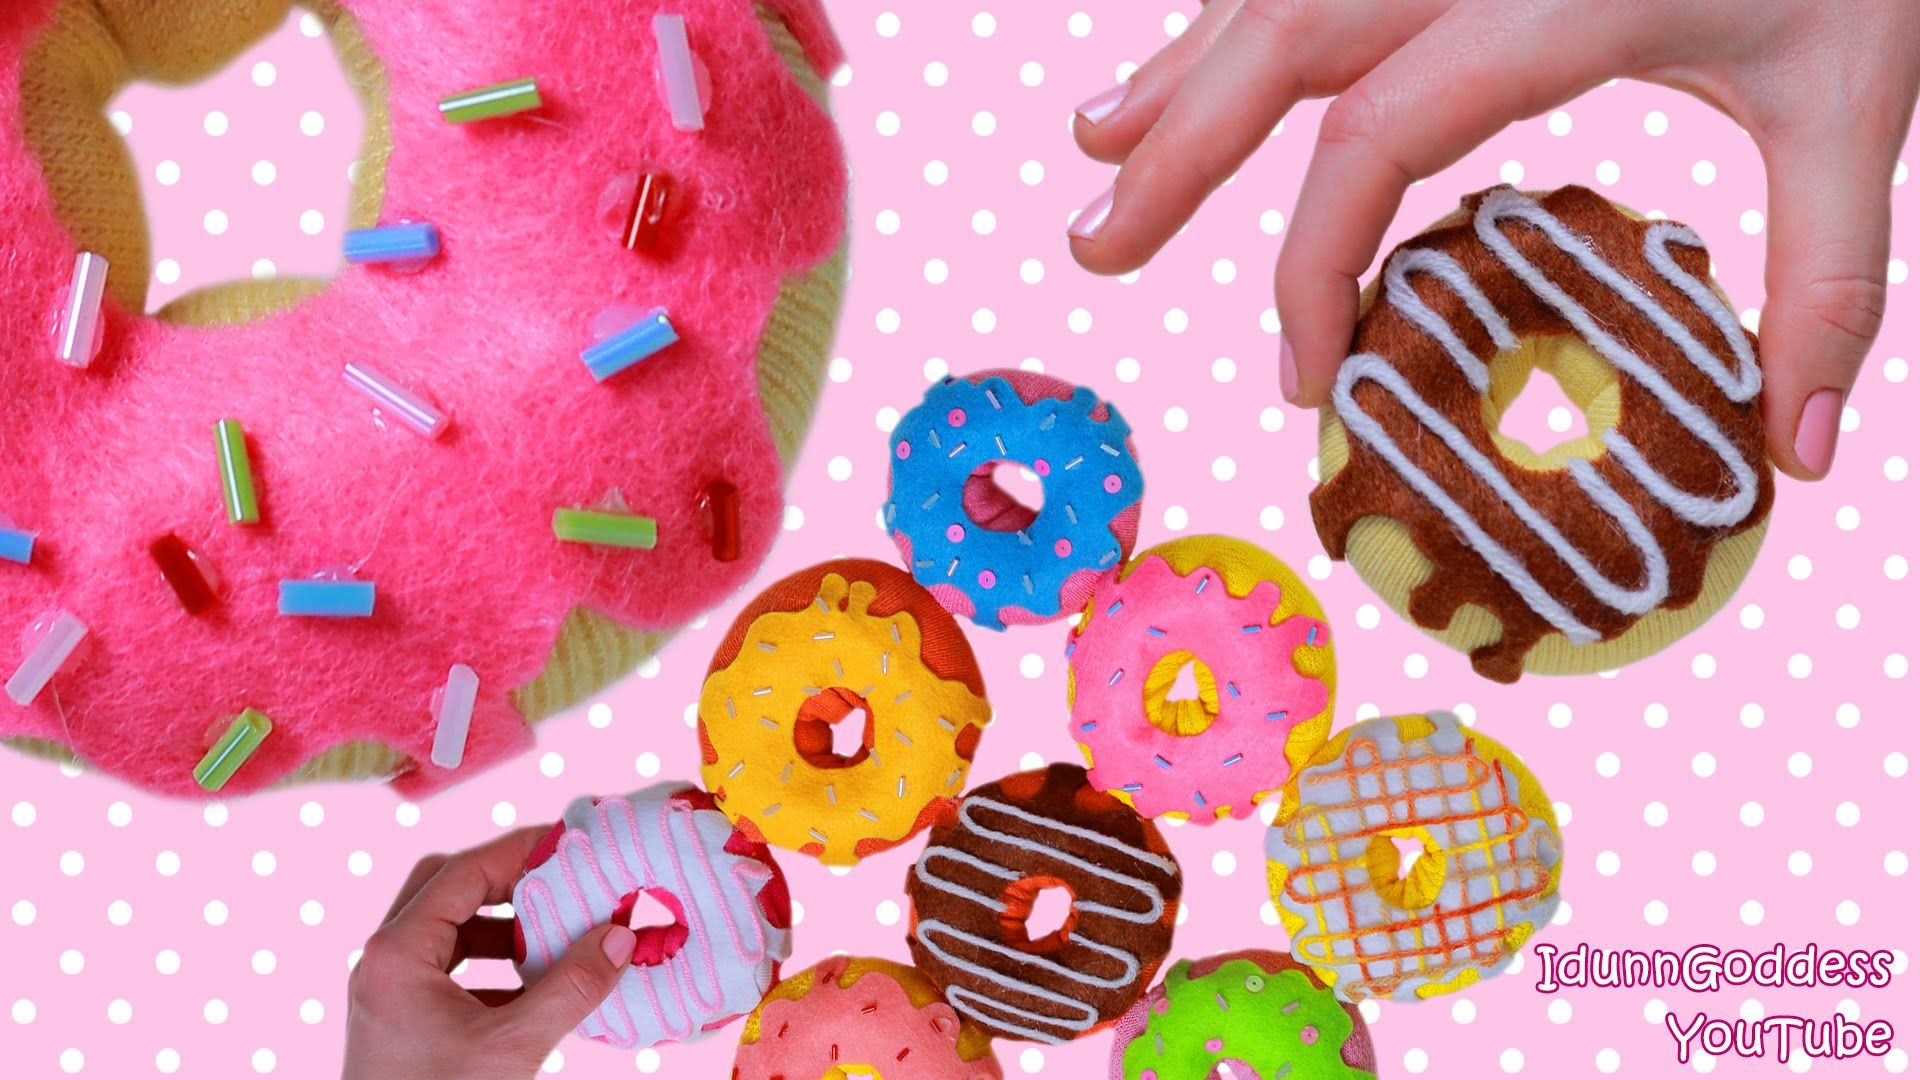 How To Make Donuts Out Of Socks 9 Diy Donuts No Sew Projects Pillow Stress Toy Hand Warmers Diy Hand Warmers Sewing Projects Diy Donuts